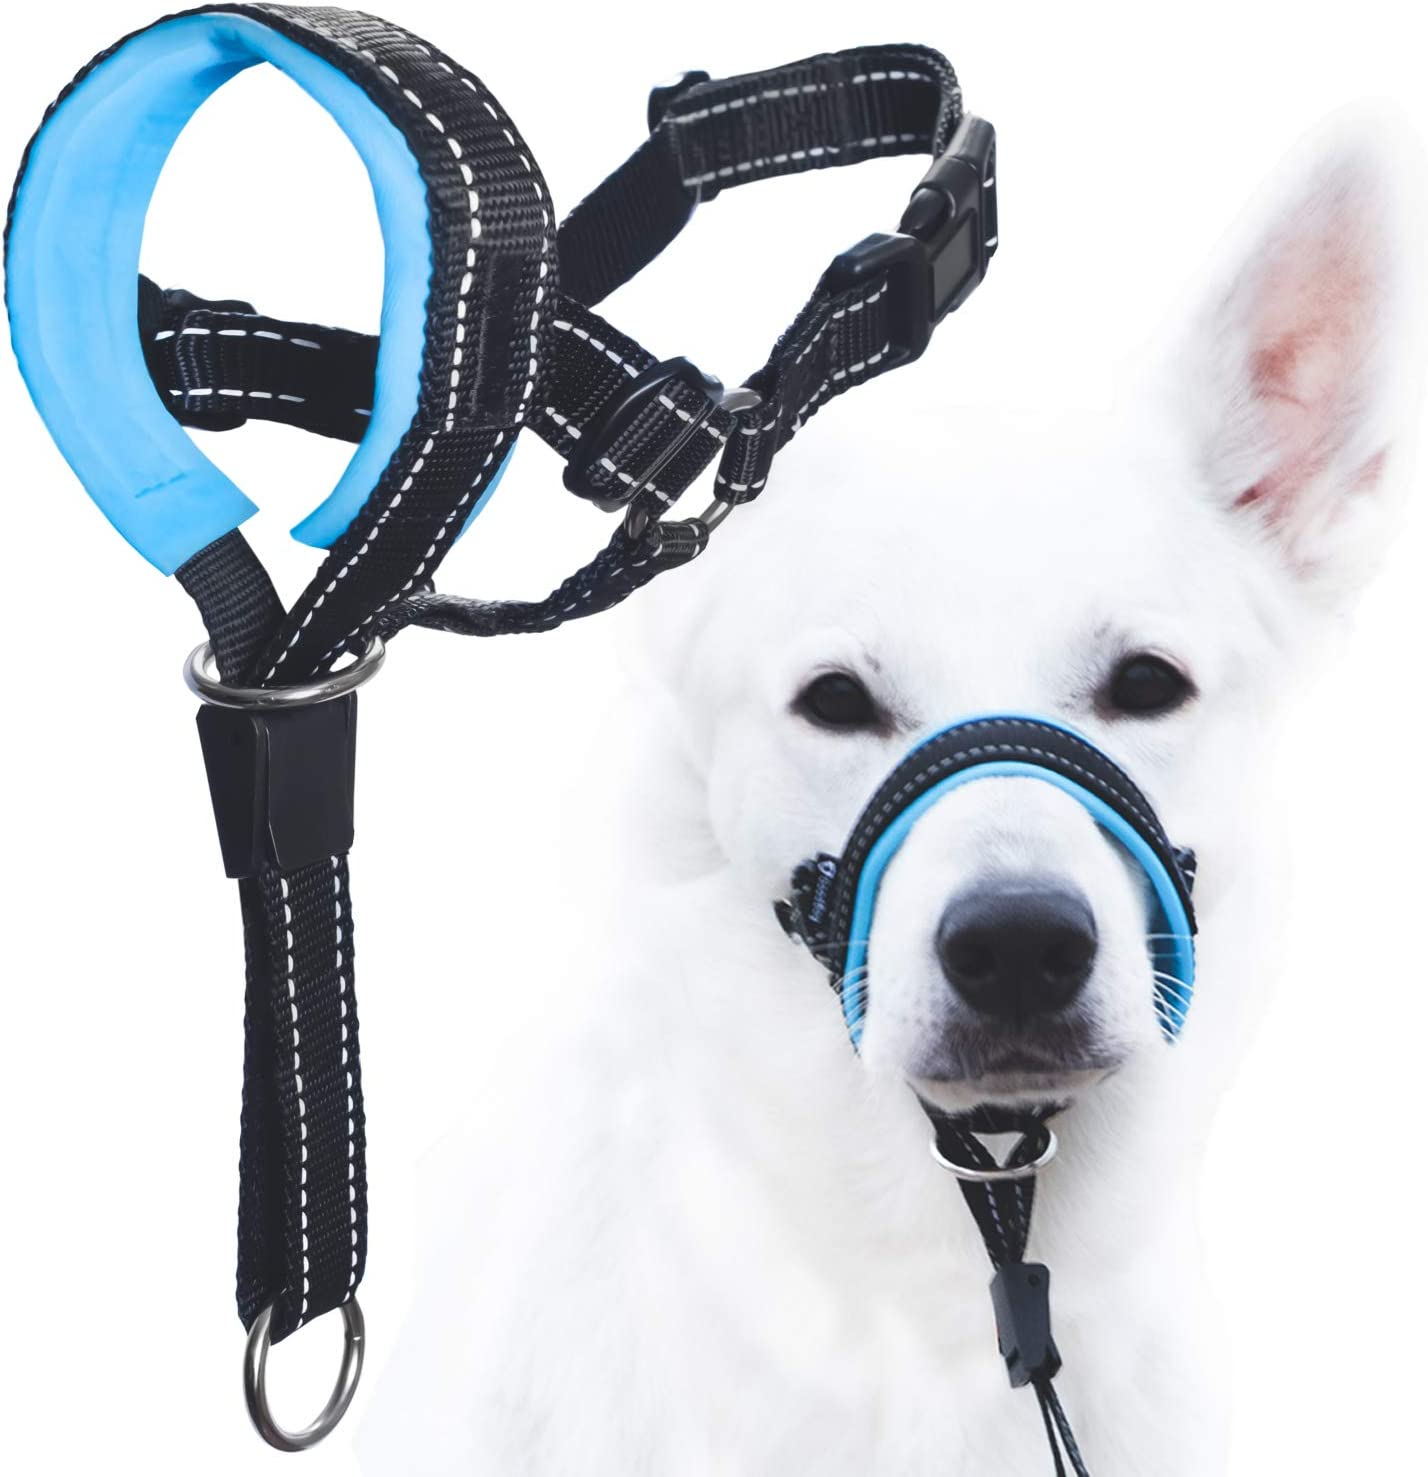 Adjustable Dog Head Harness Fabric Padded Head Collar for Dogs to Prevent Pulling wintchuk Dog Head Collar